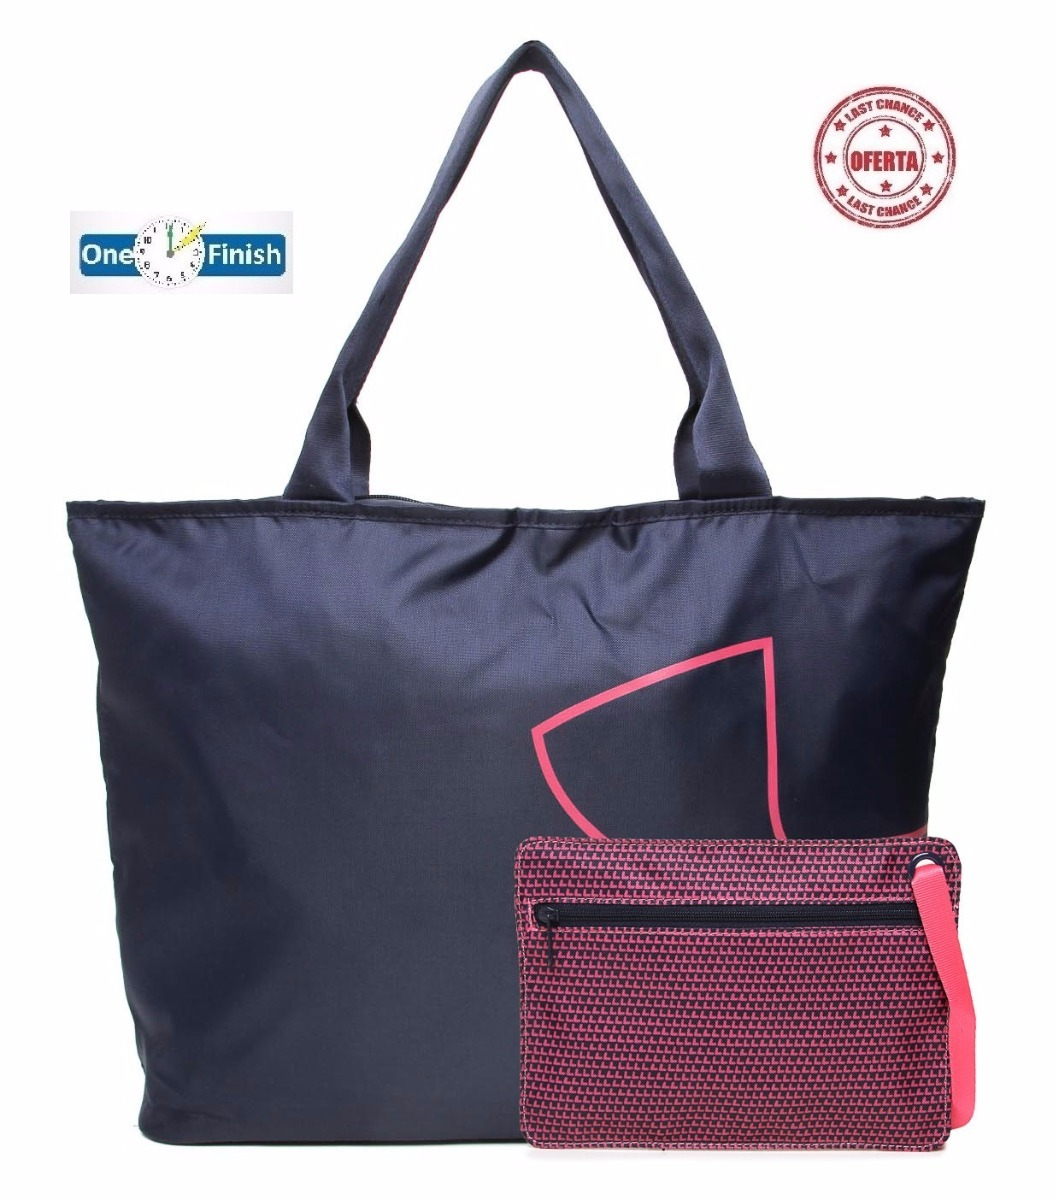 ce70d365b83 bolsa feminina under armour big logo tote - original - nova. Carregando  zoom.